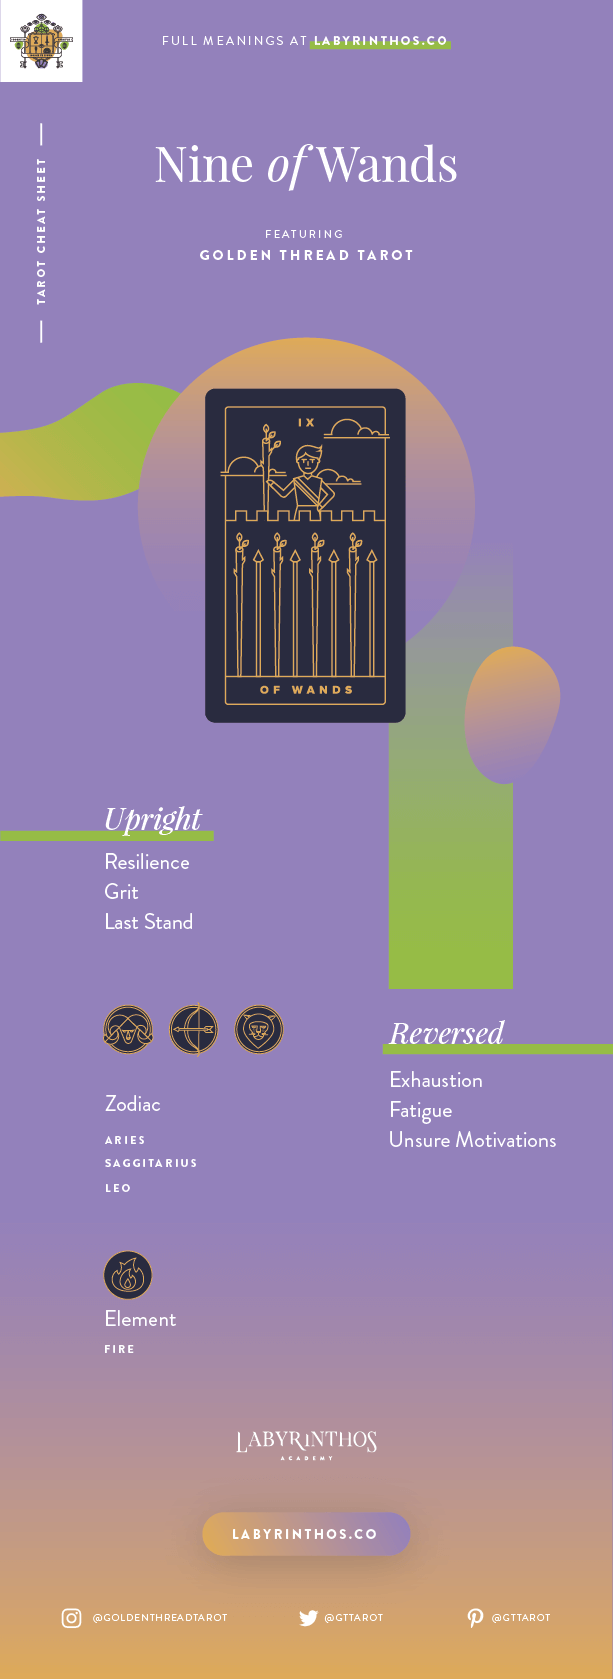 Nine of Wands Meaning - Tarot Card Meanings Cheat Sheet